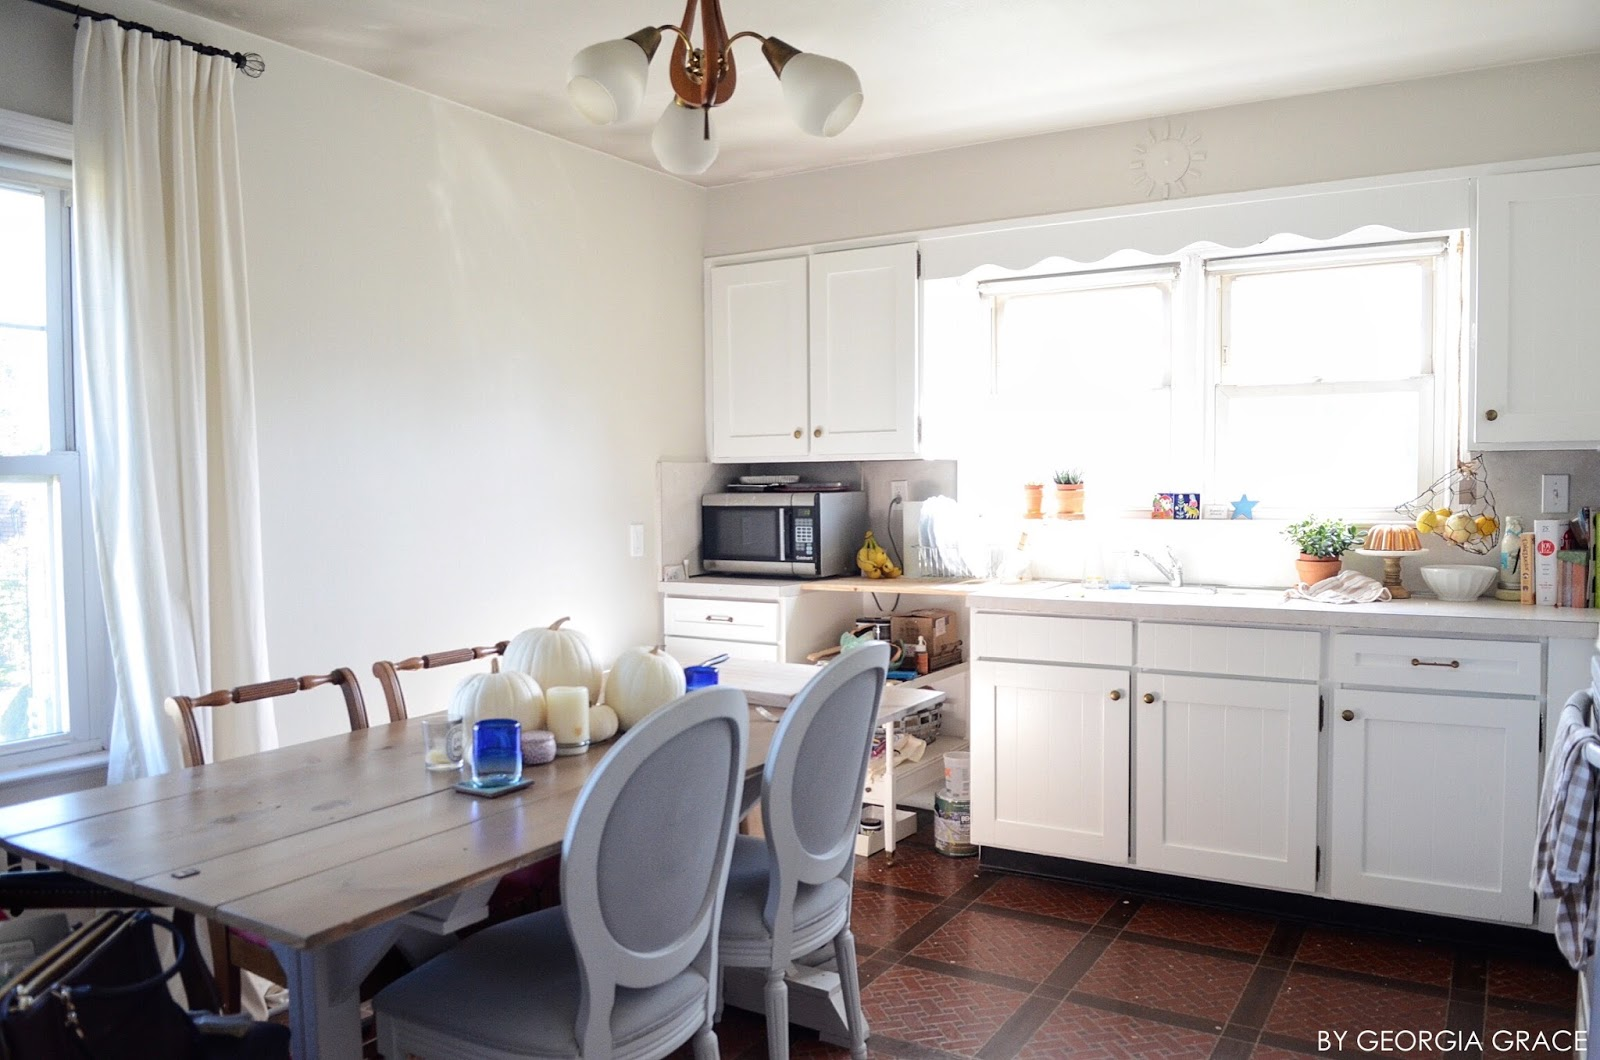 Kitchen: New Painted Cabinets & Walls | By Georgia Grace